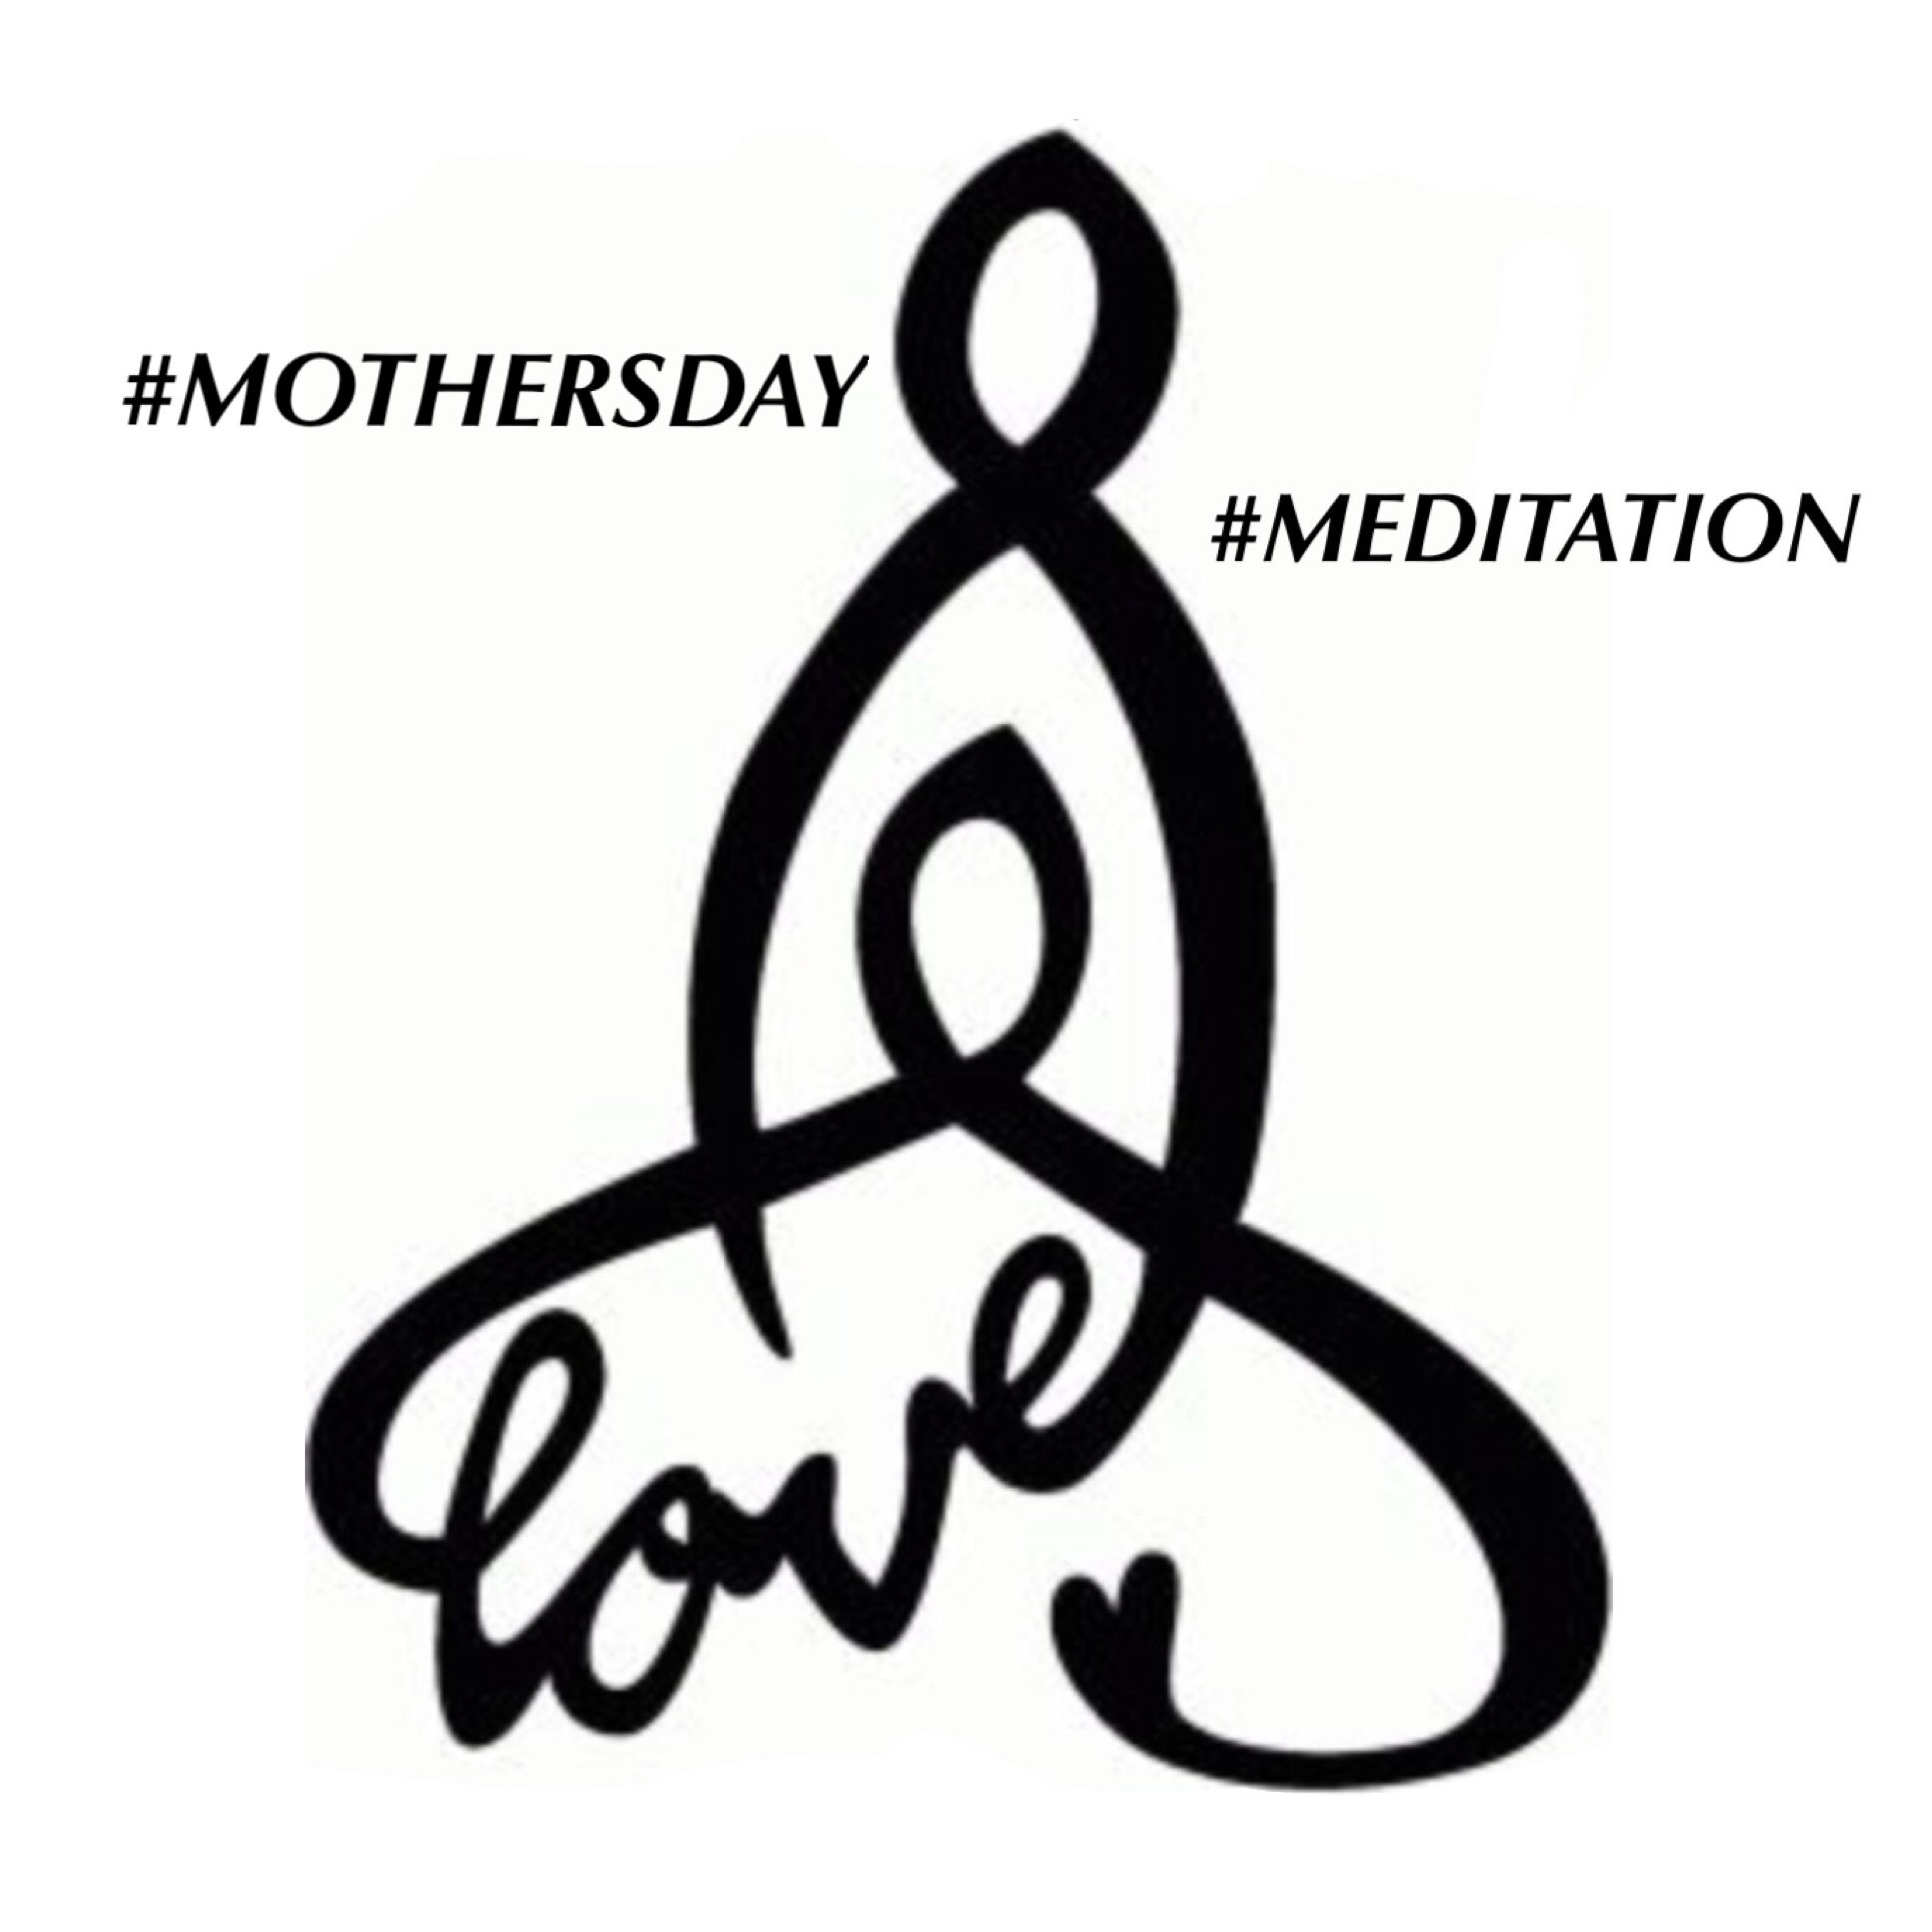 MOTHERS DAY MEDITATION